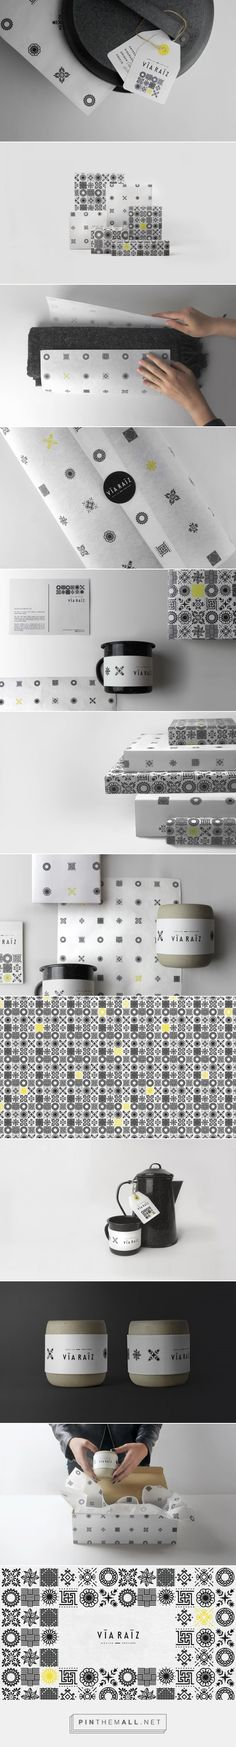 Vía Raíz craft products packaging design by TORO PINTO - http://www.packagingoftheworld.com/2017/03/via-raiz.html